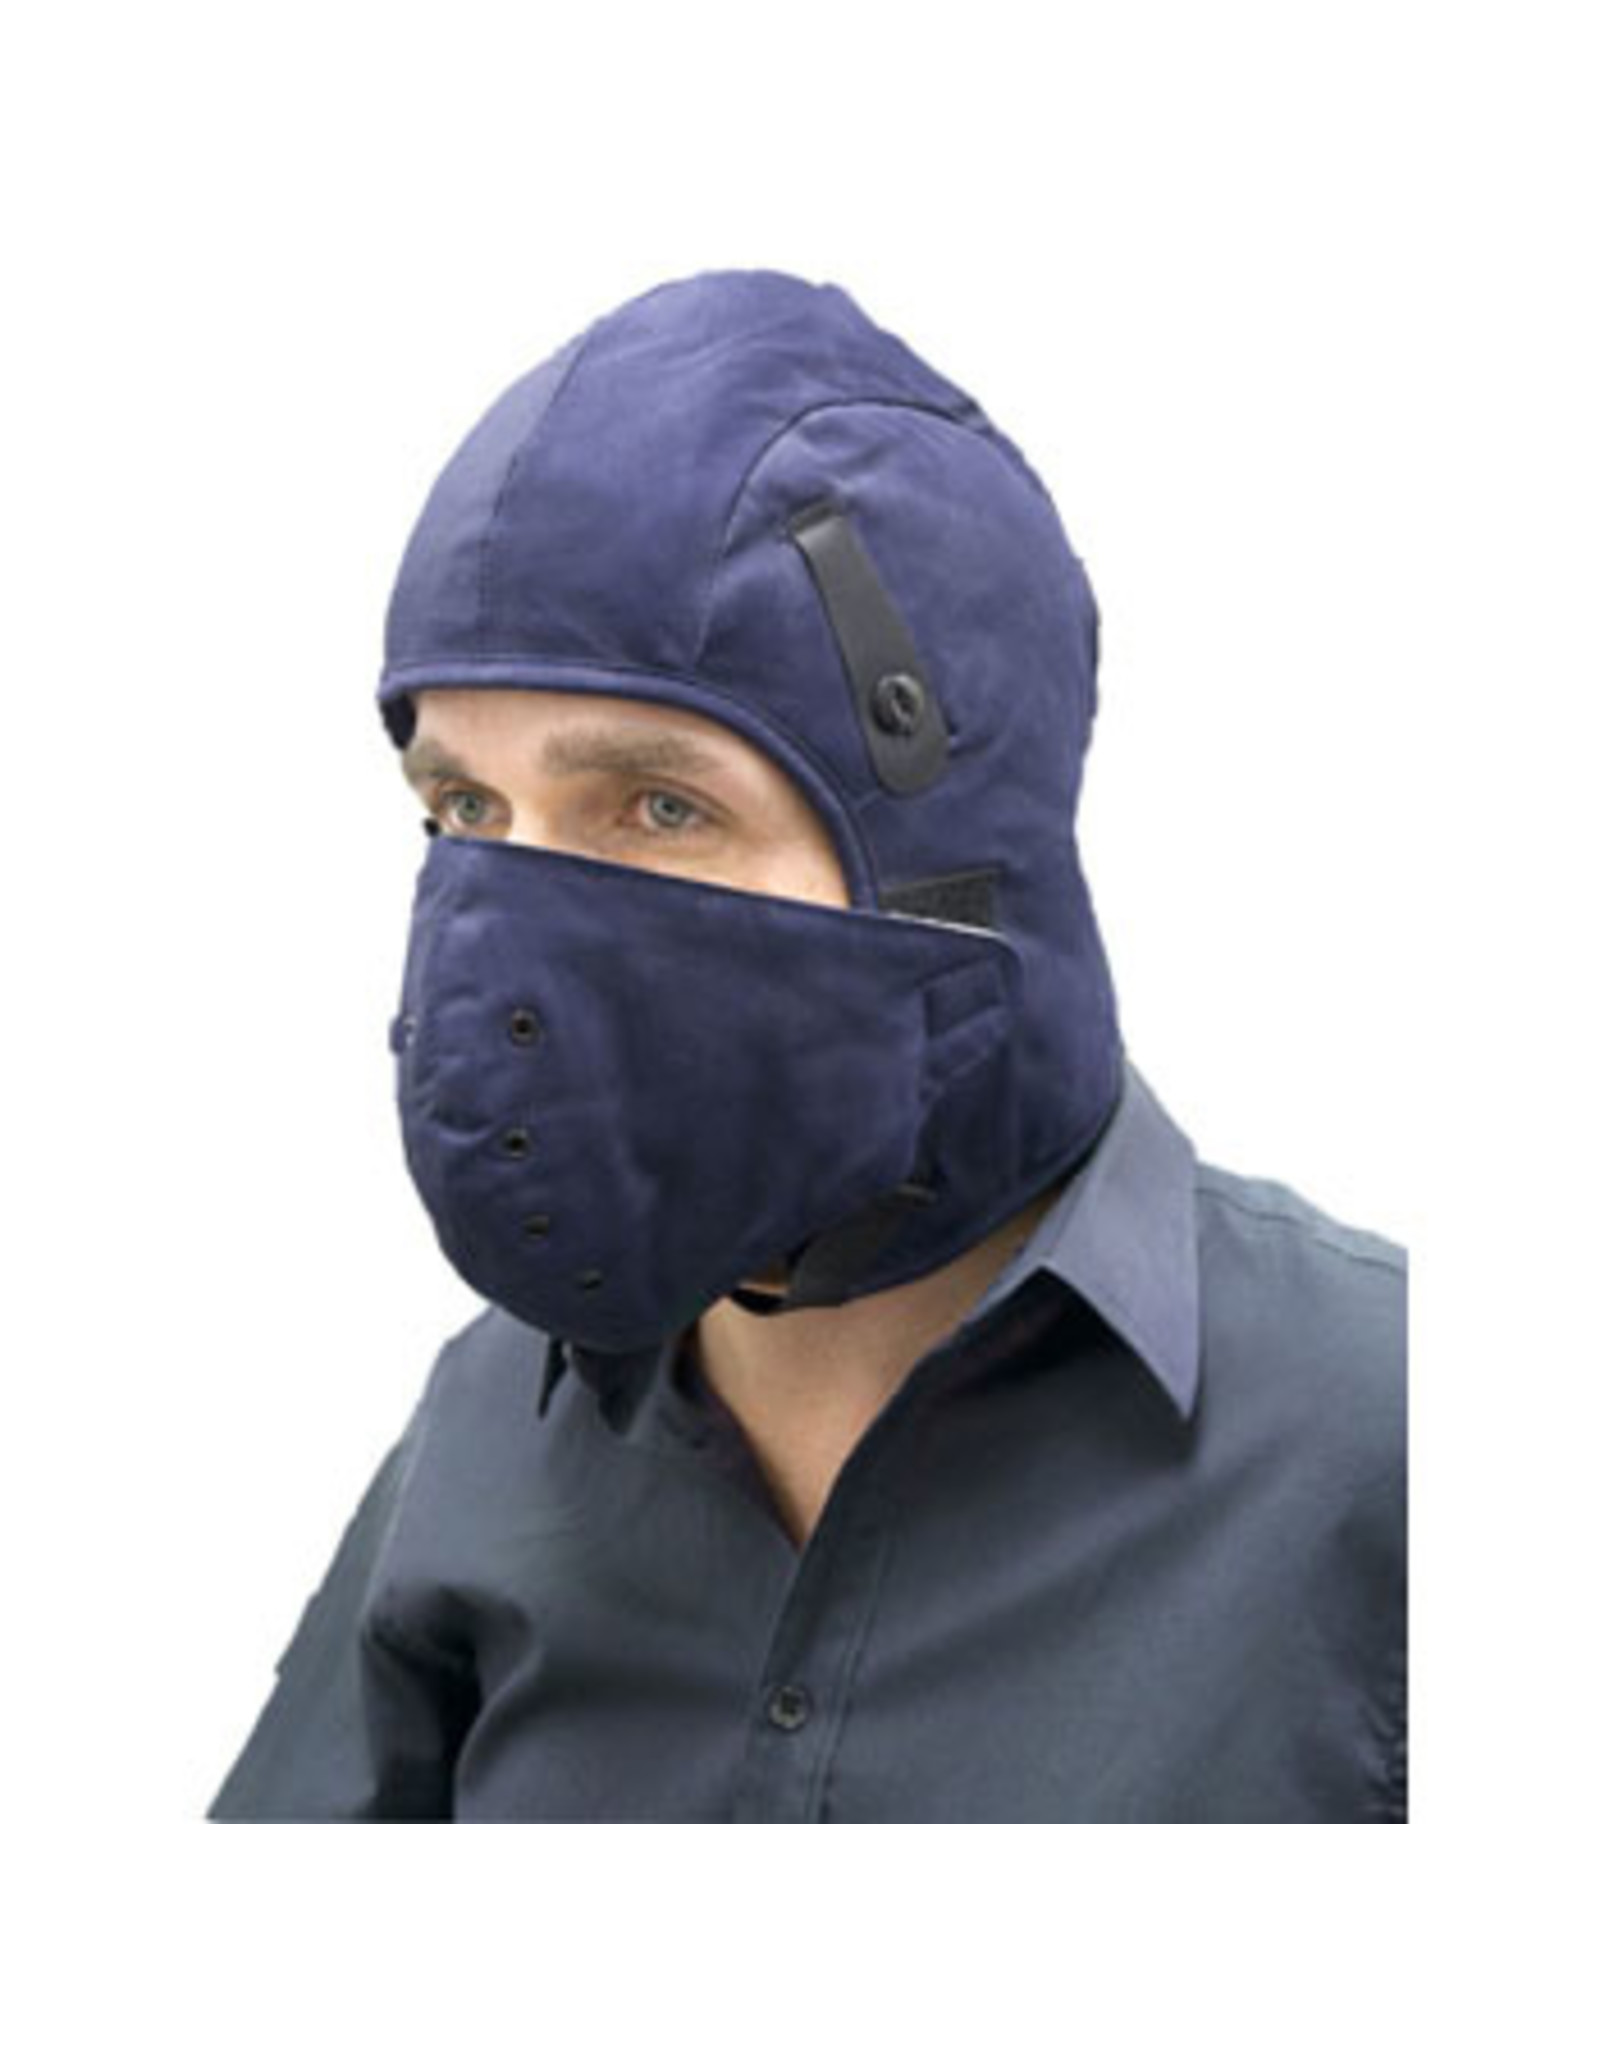 Winter Liner Cotton Outer Shell with Long Neck and face Warmer.